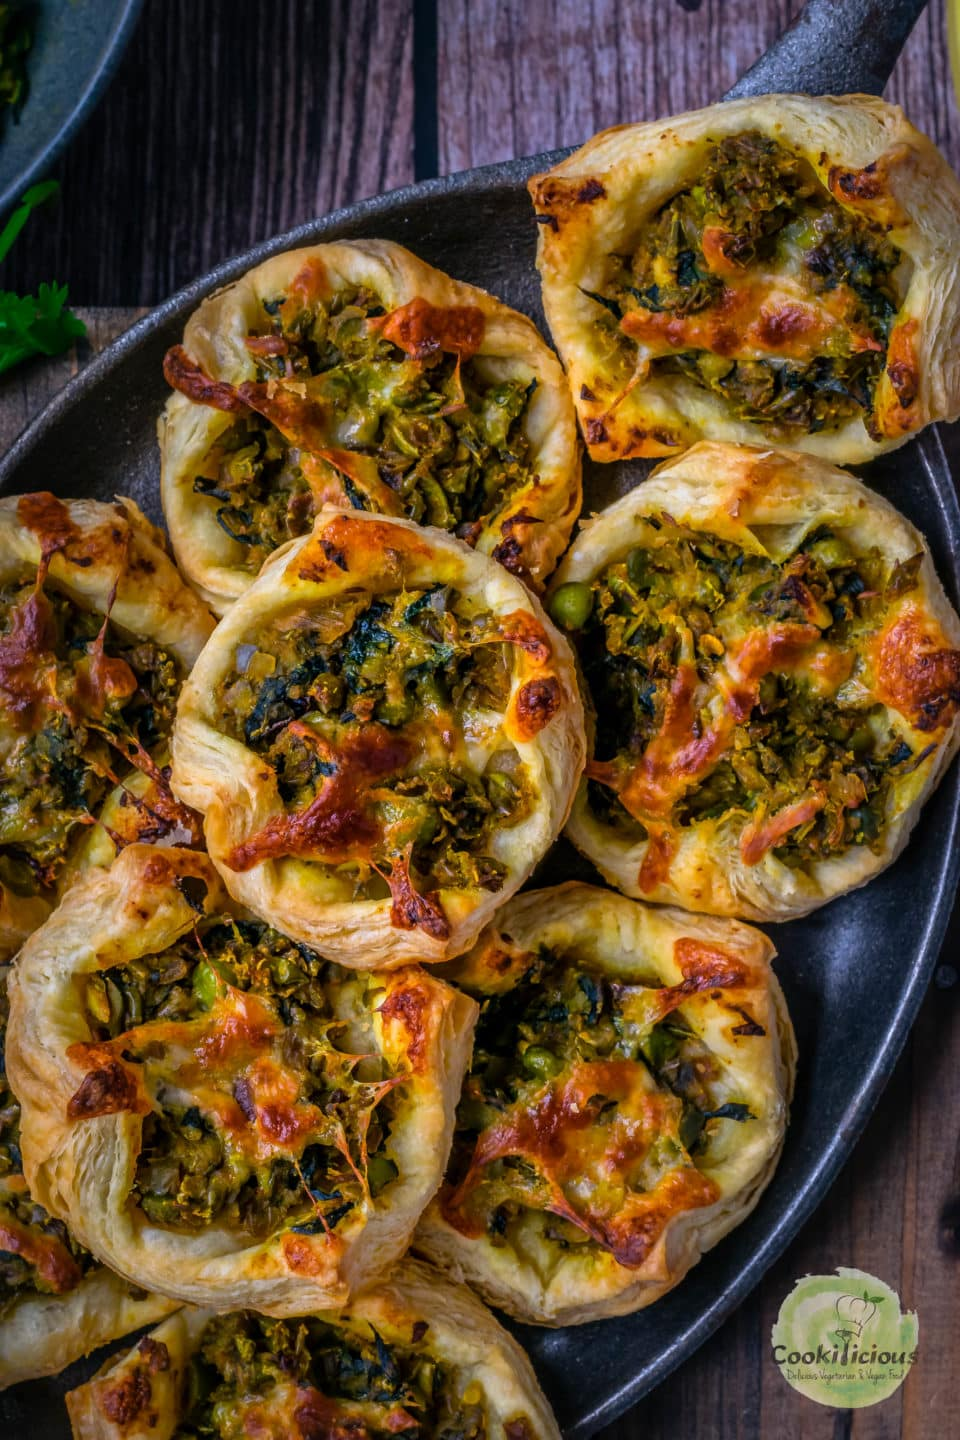 Homemade Spicy Green Peas & Spinach Pastry PuffsAppetizers & Snacks